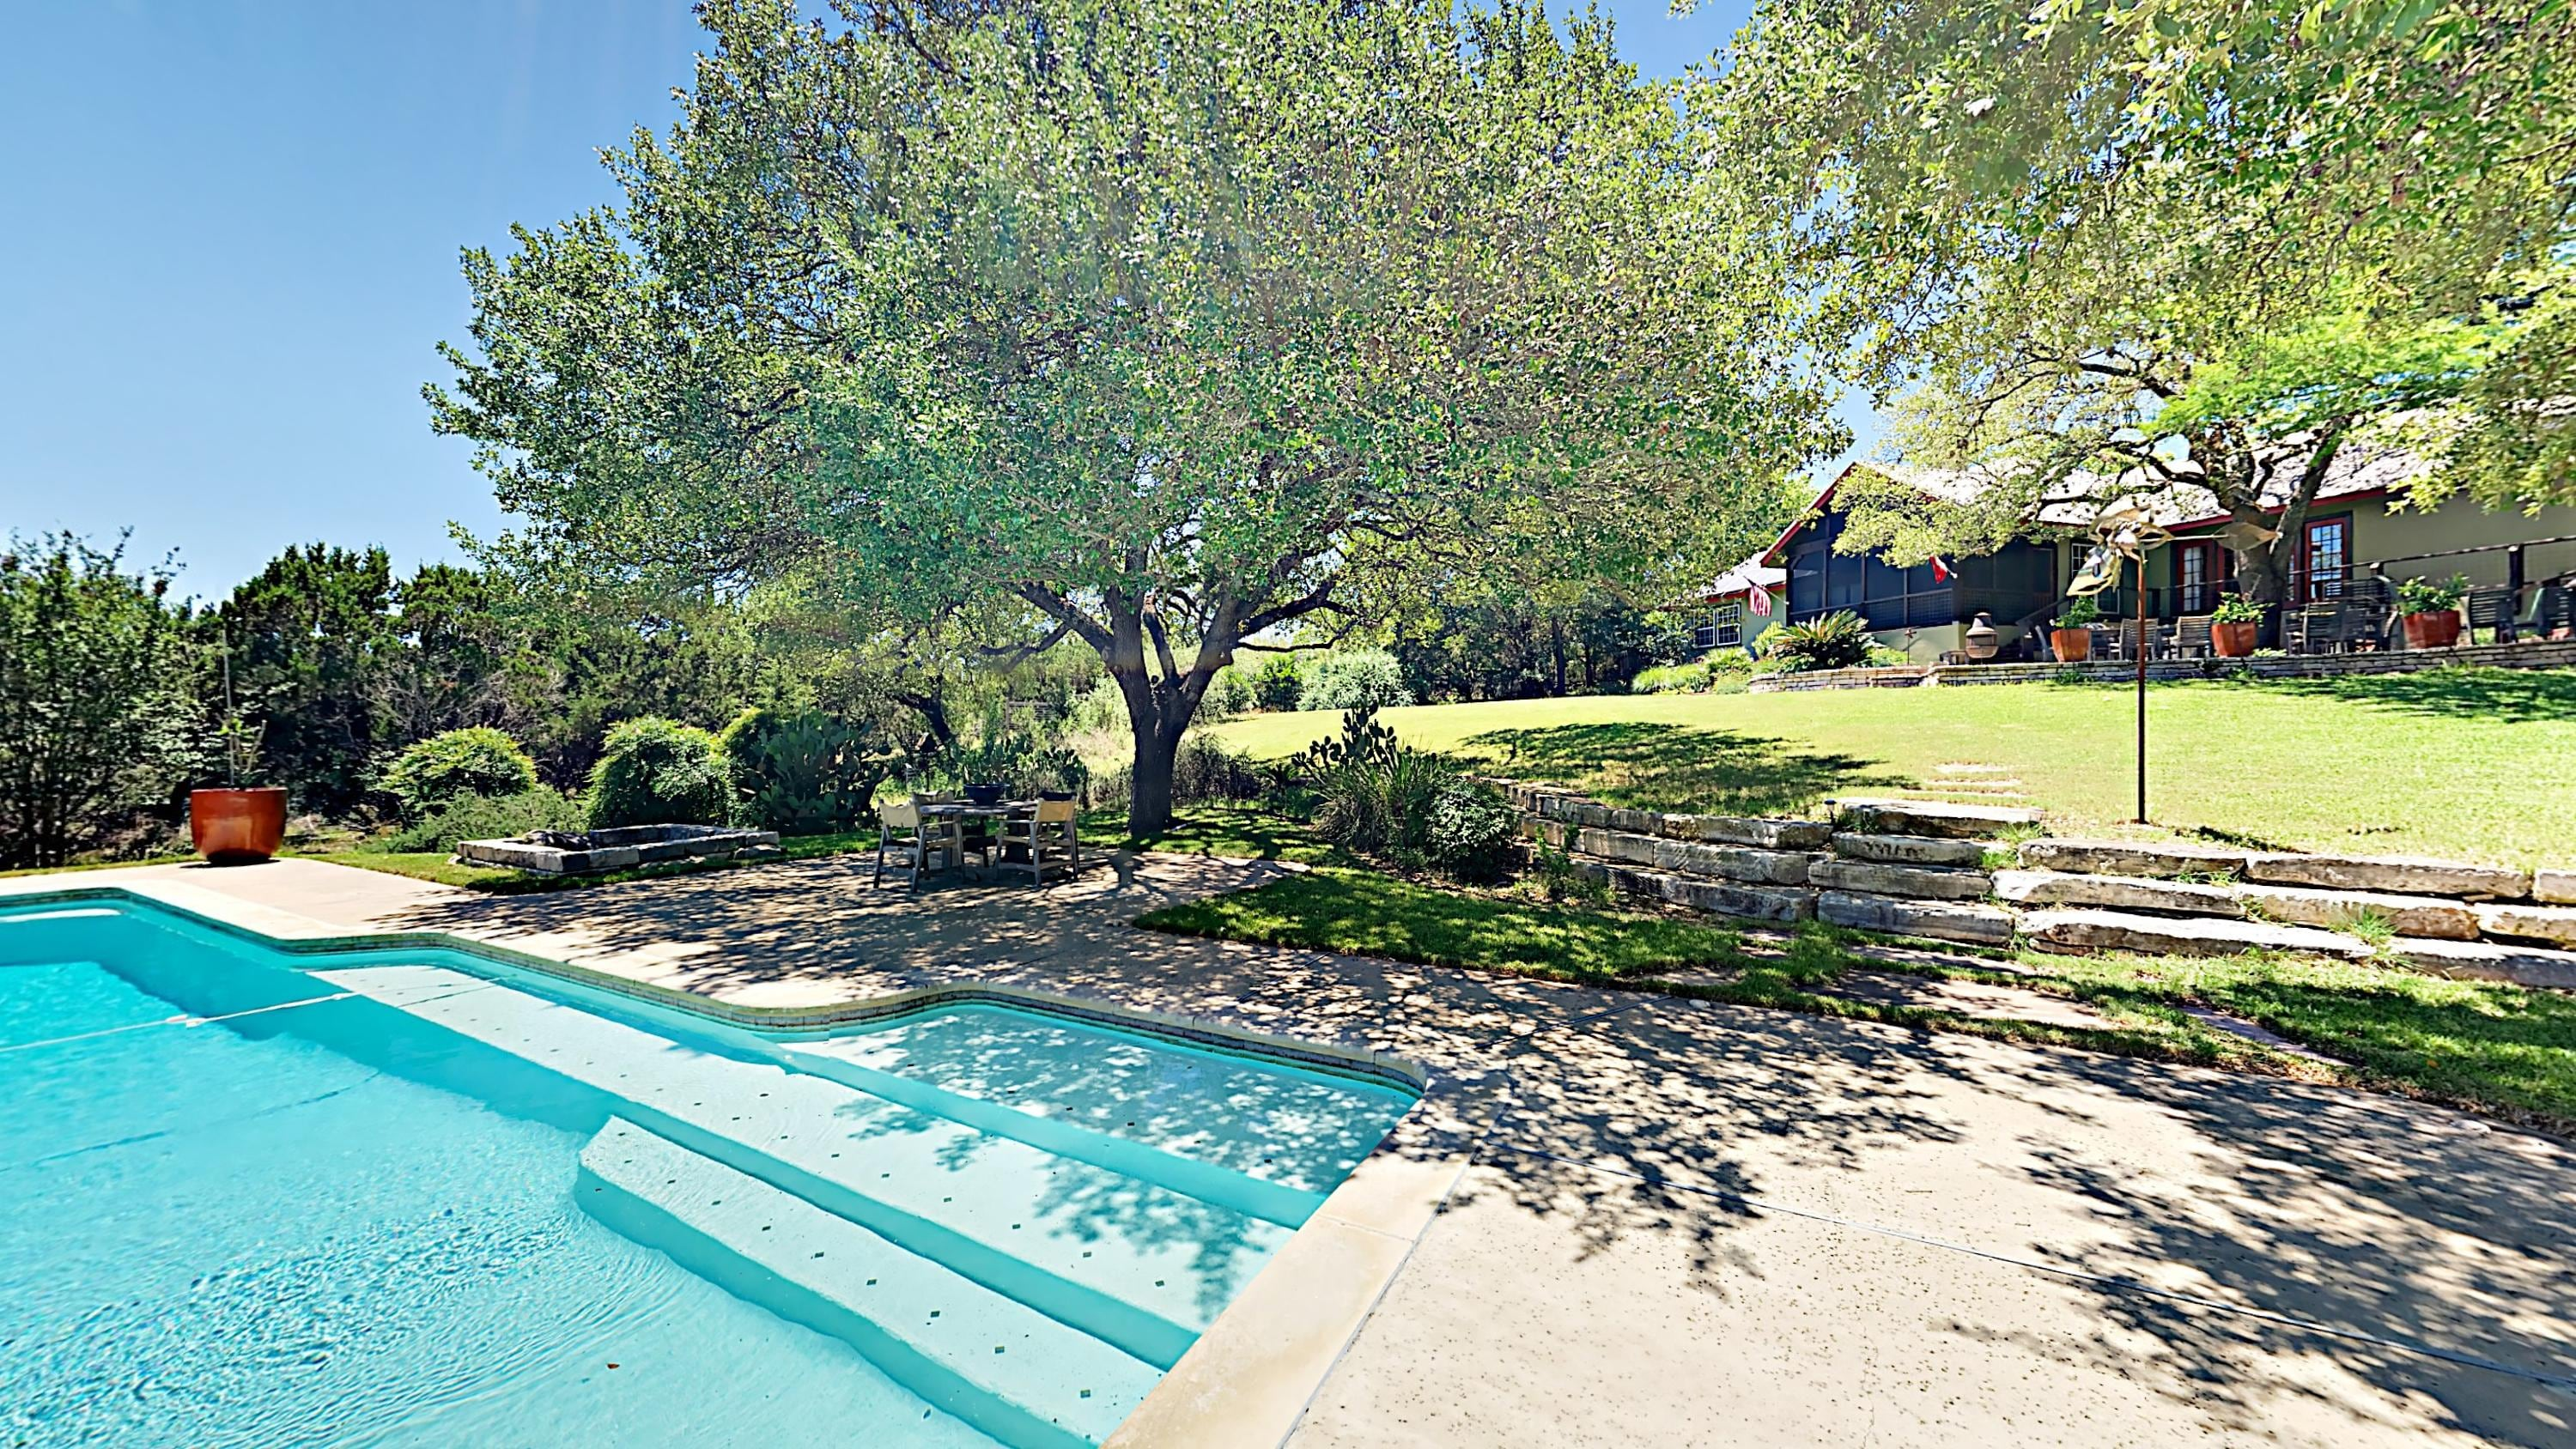 Welcome to Austin! A pool awaits right outside your door.